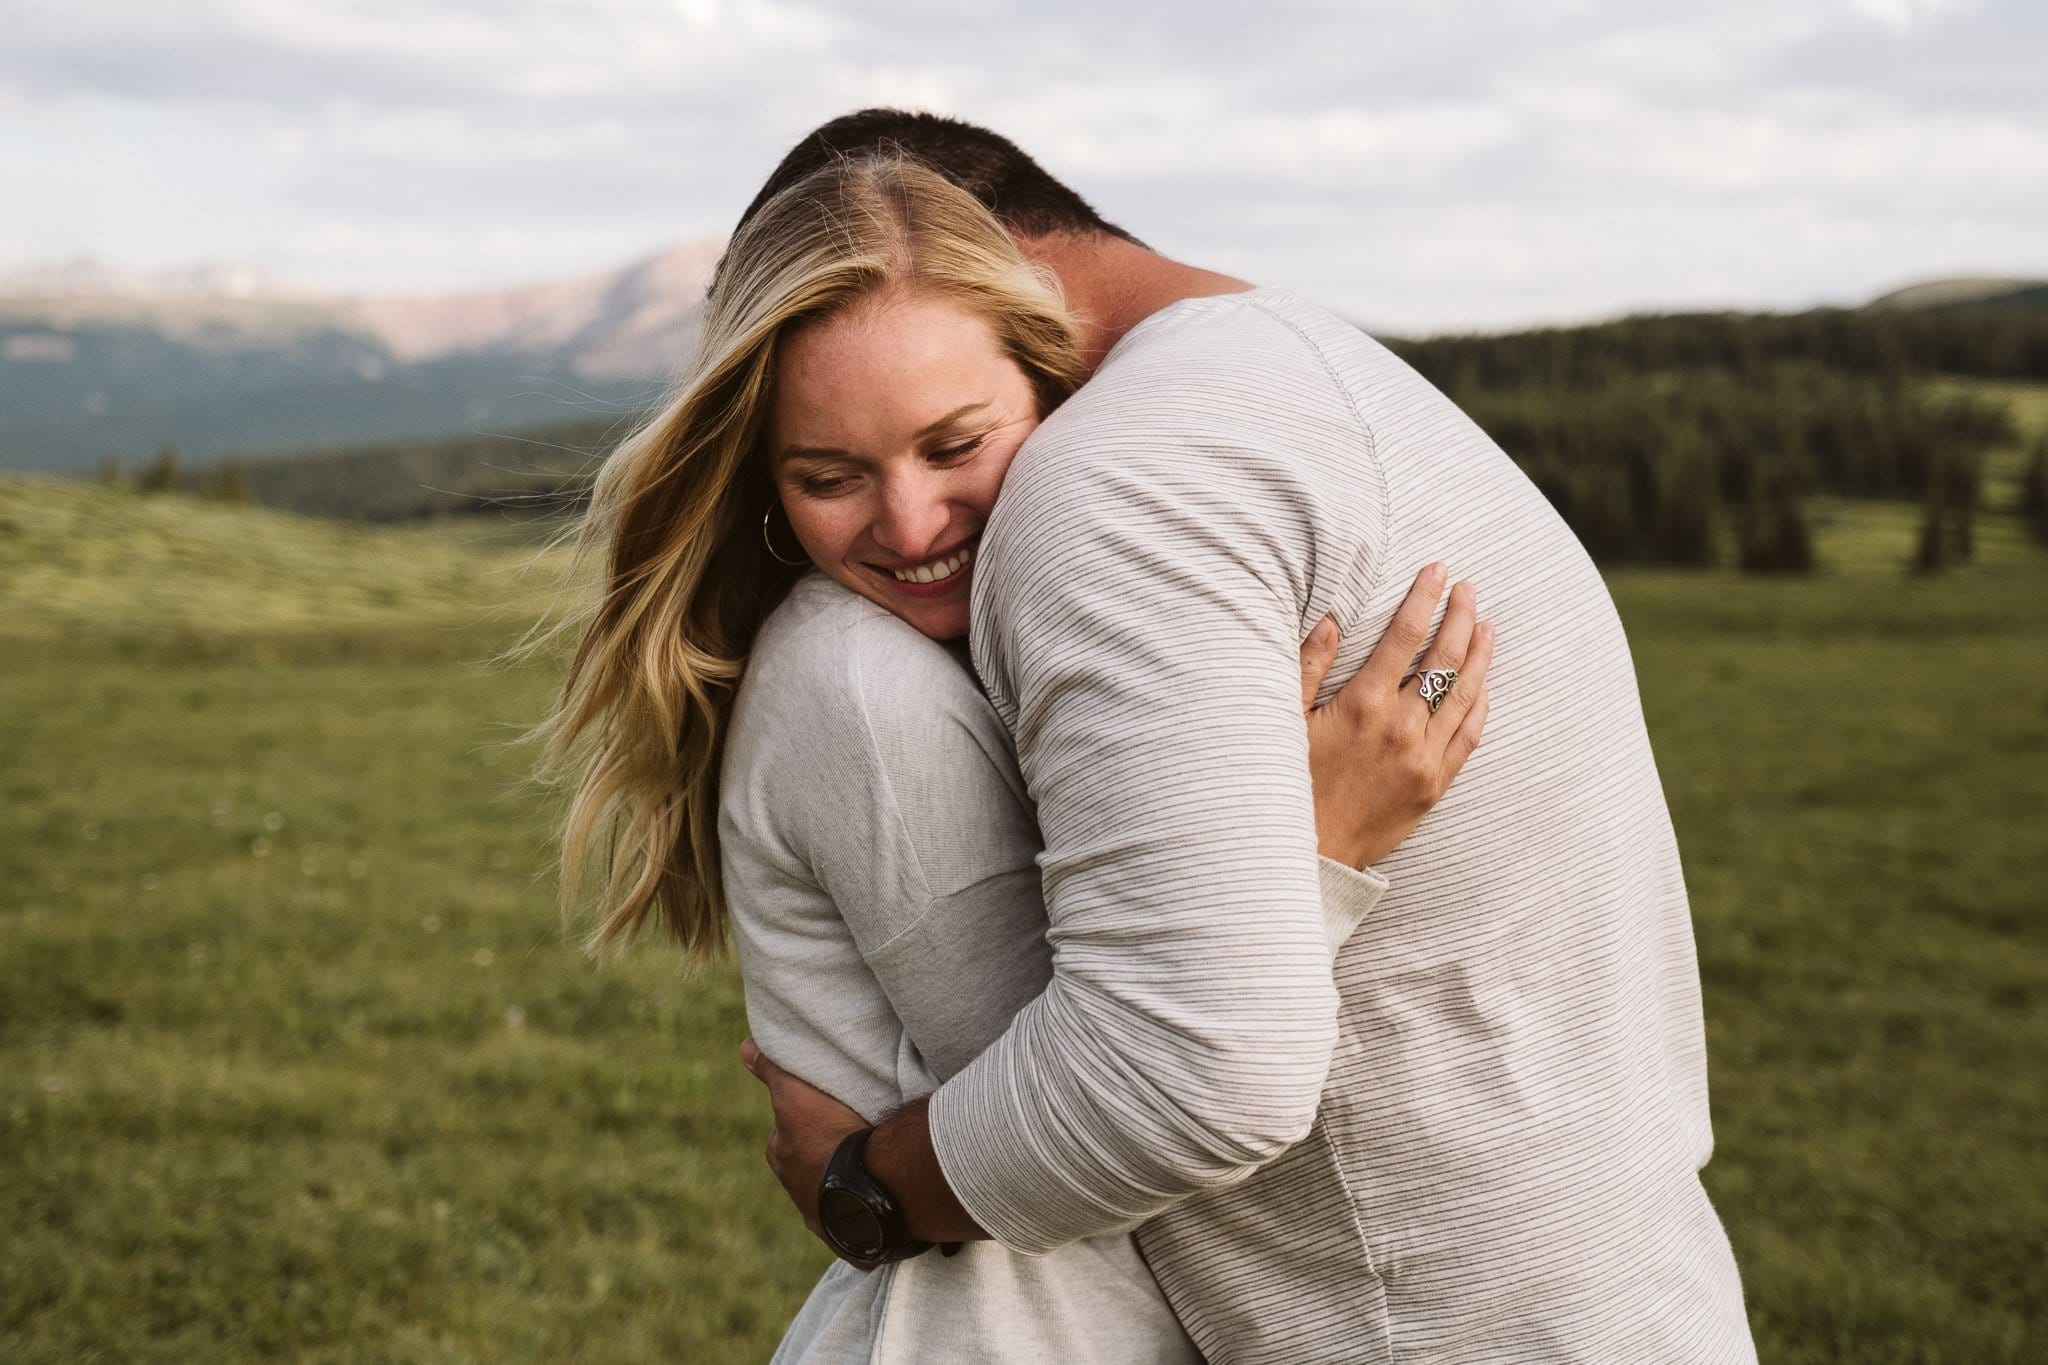 Kira + Stephen's Vail Mountain Engagement